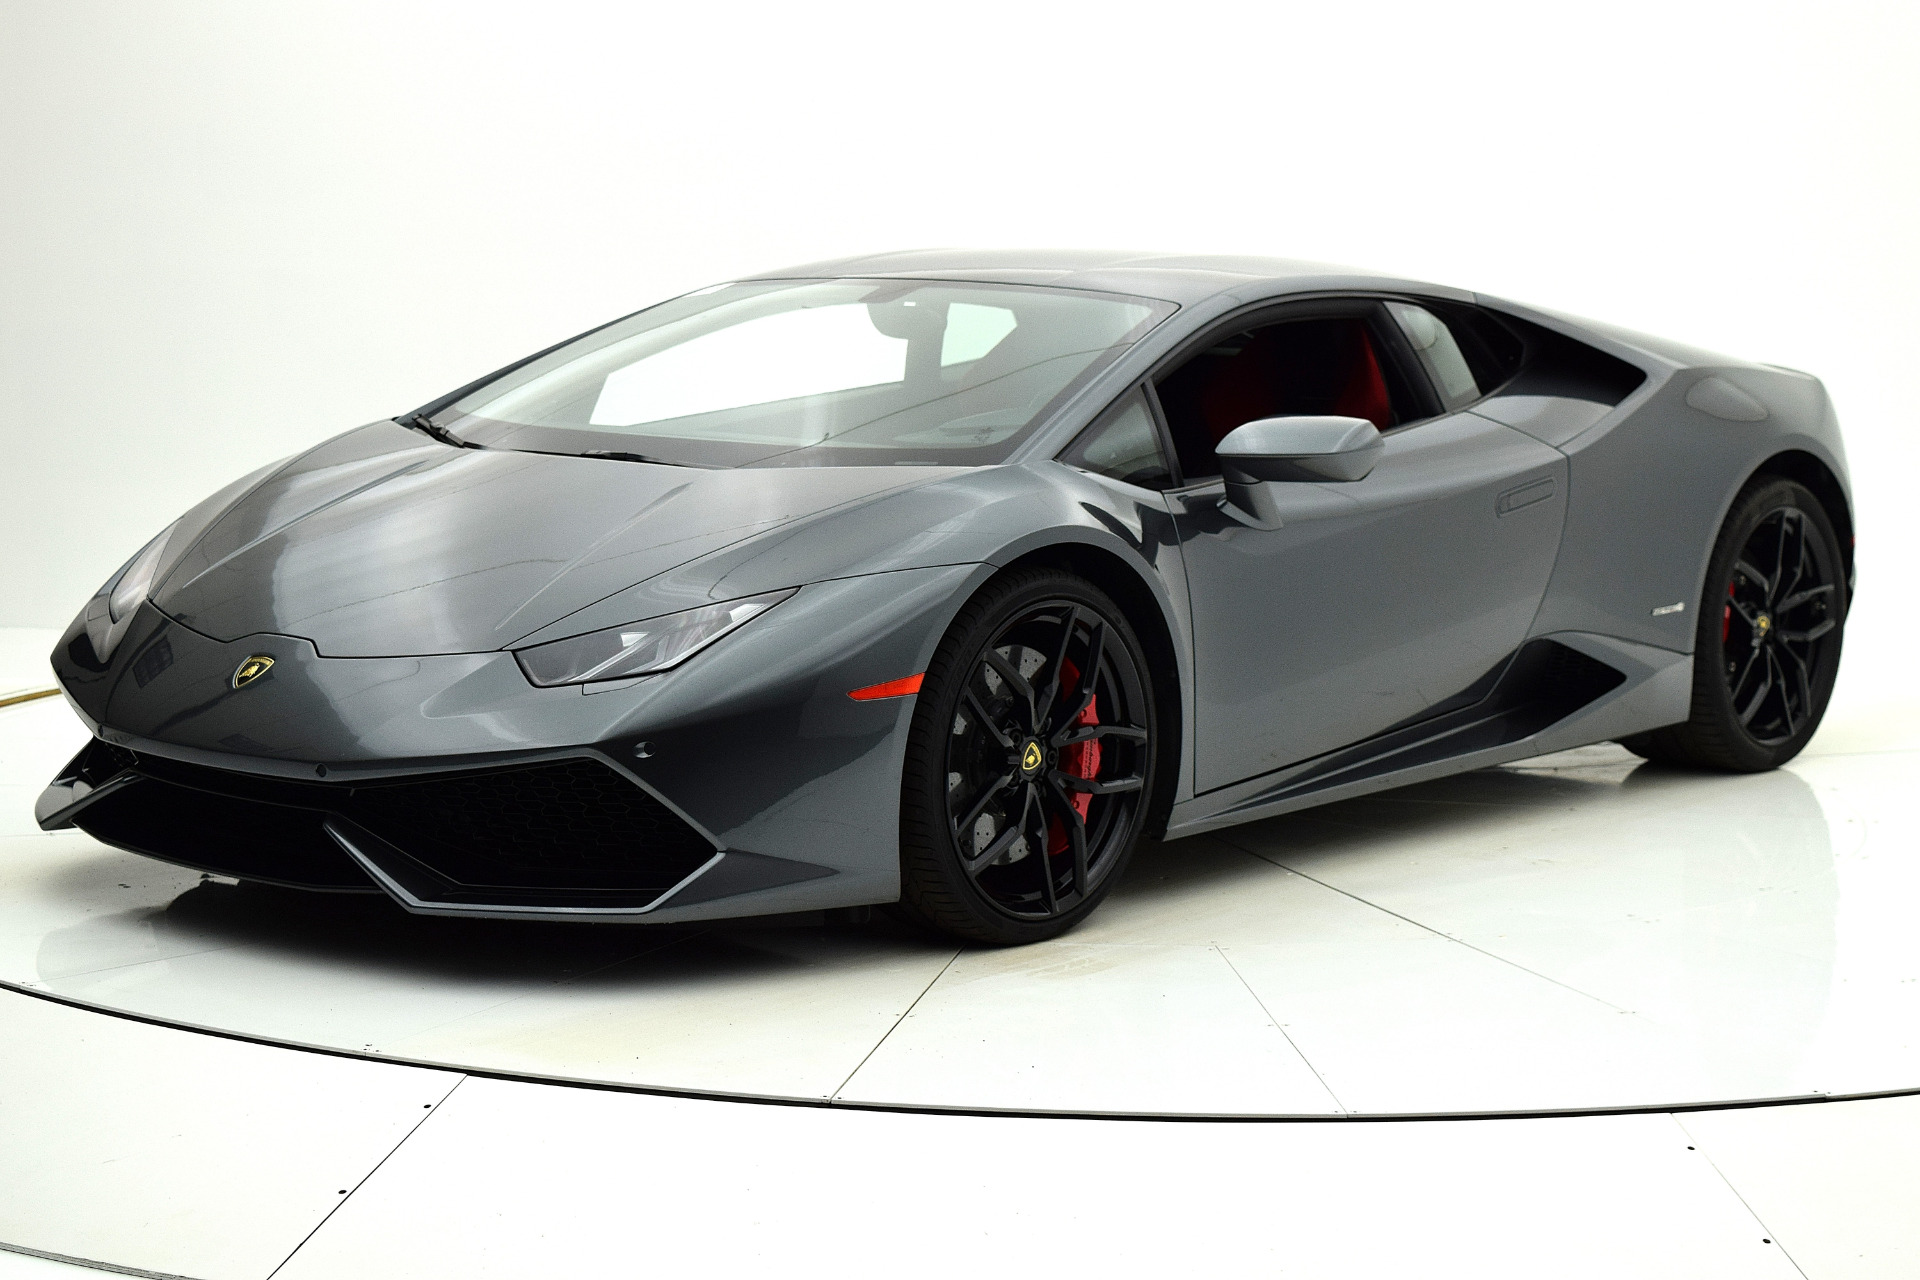 Used 2015 Lamborghini Huracan LP610-4 for sale Sold at F.C. Kerbeck Lamborghini Palmyra N.J. in Palmyra NJ 08065 2